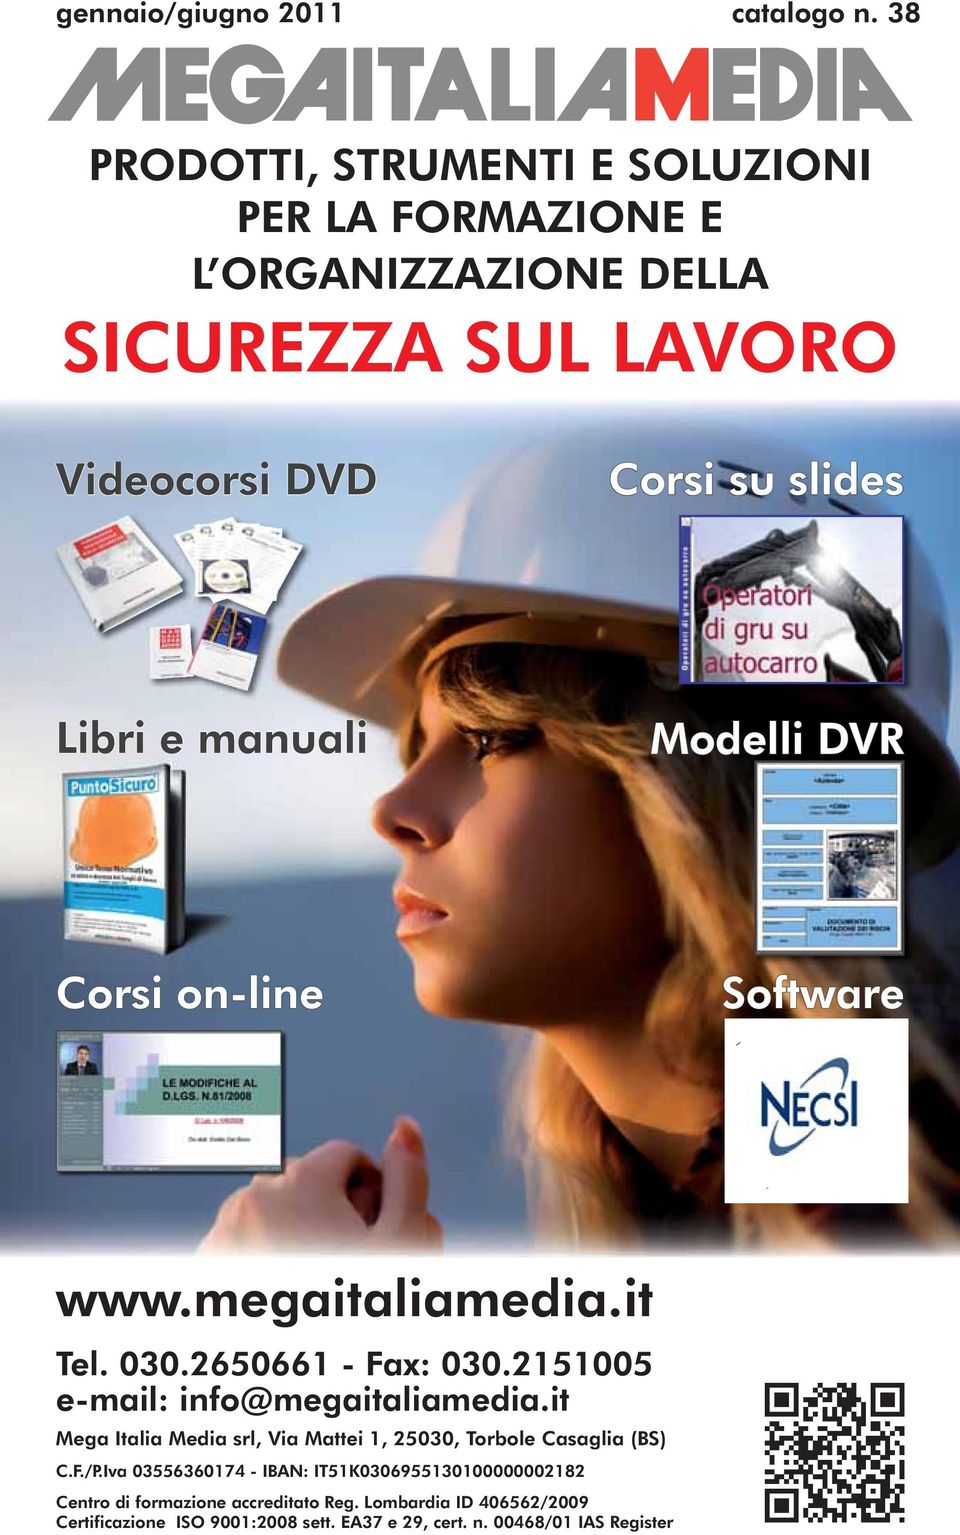 manuali Modelli DVR Corsi on-line Software www.megaitaliamedia.it Tel. 030.2650661 - Fax: 030.2151005 e-mail: info@megaitaliamedia.